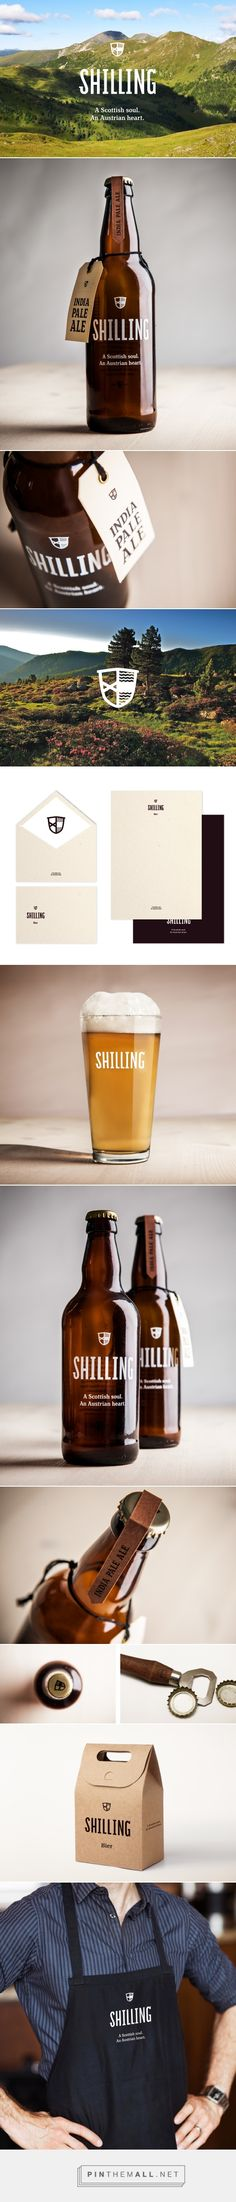 Shilling packaging and branding.